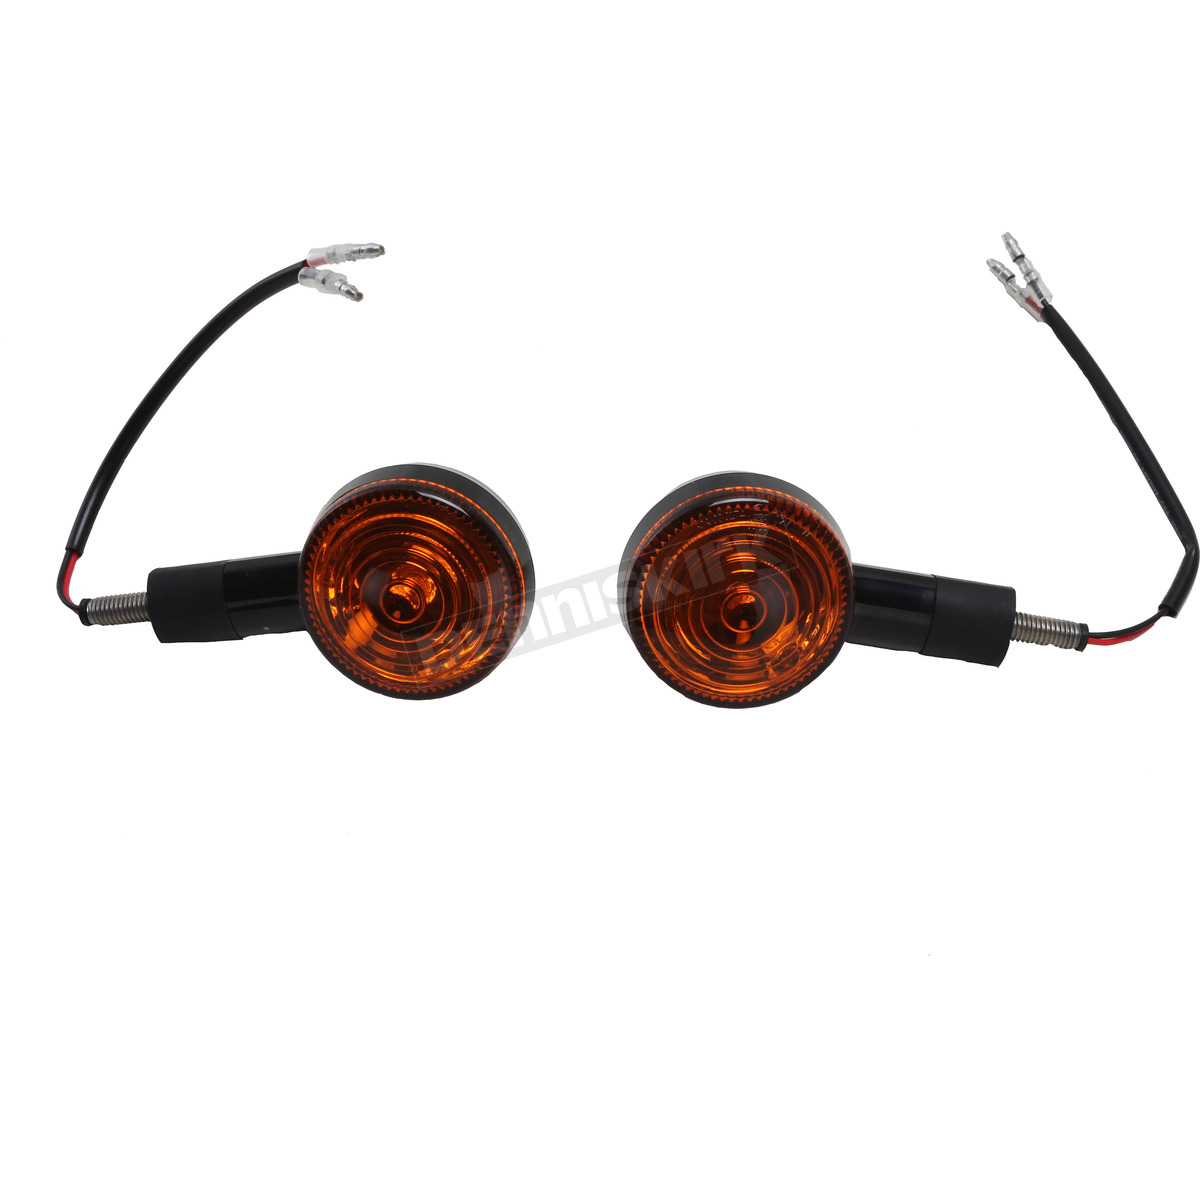 K S Black Dot Universal Single Circuit Led Turn Signal W Amber Blinker Lens 25 9563